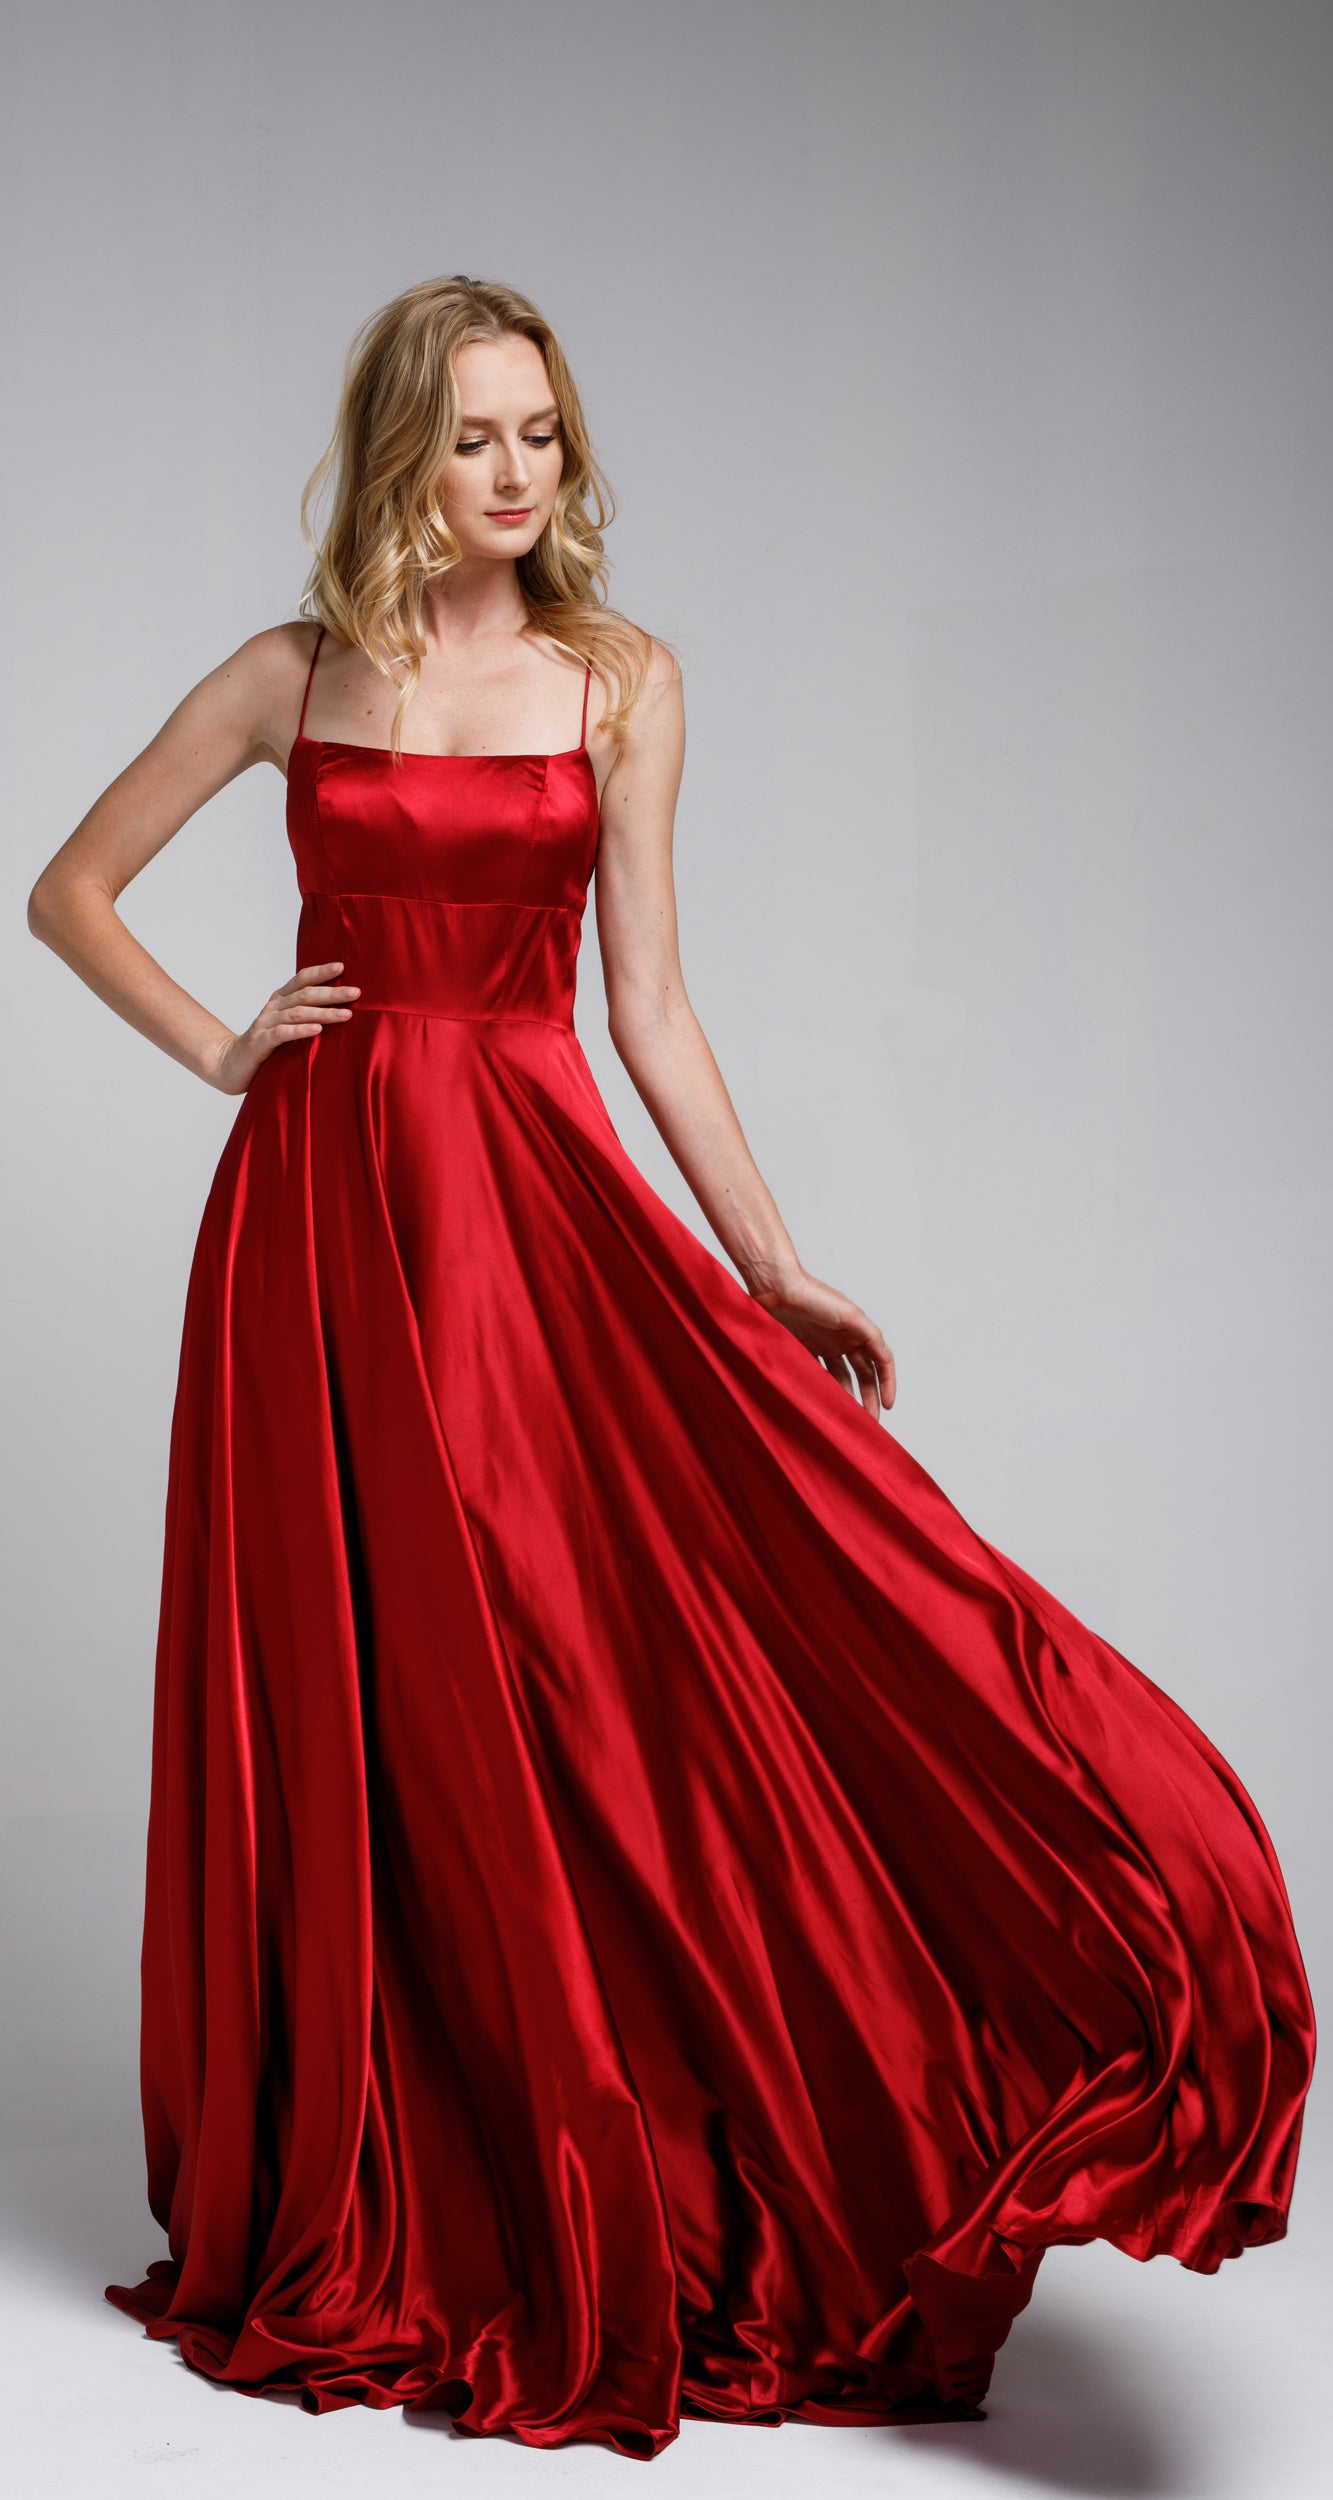 Main image of A-line Spaghetti Prom Gown With Long Flowing Skirt